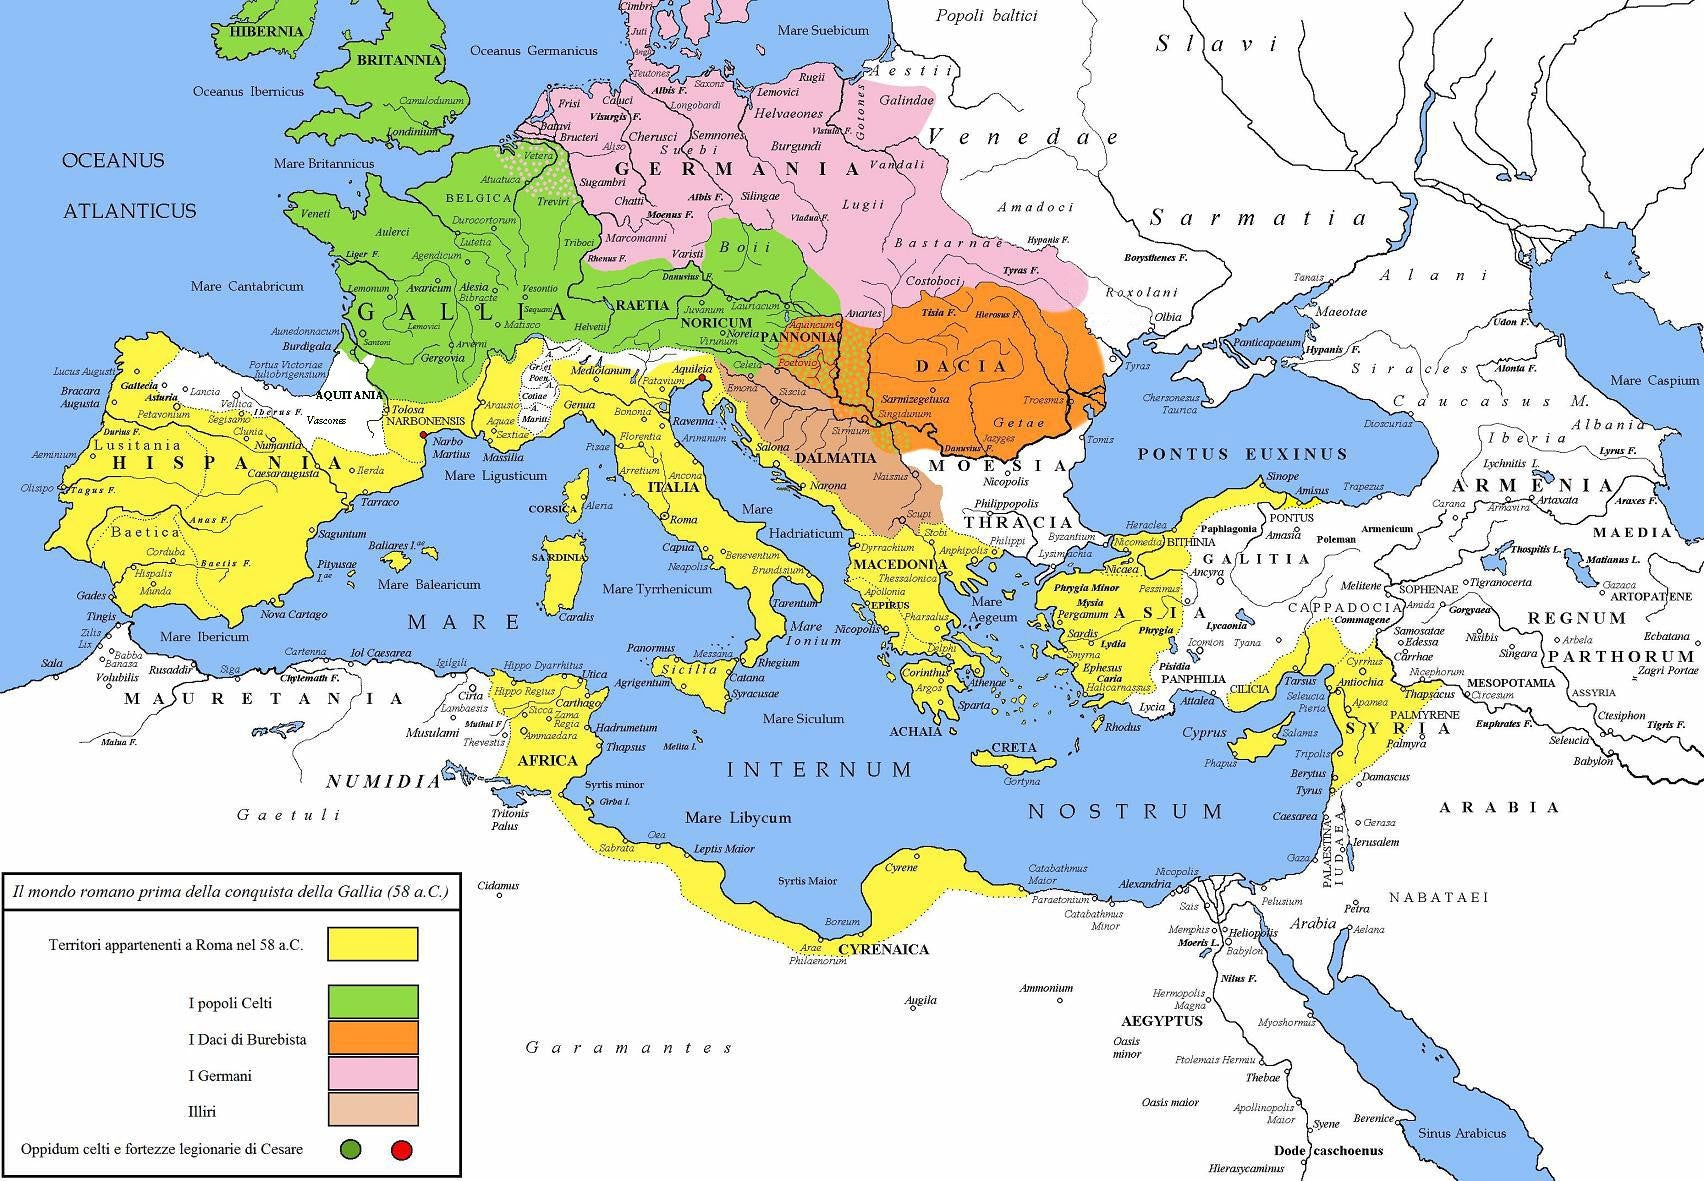 celts romans map gauls italia history caesar vercingetorix